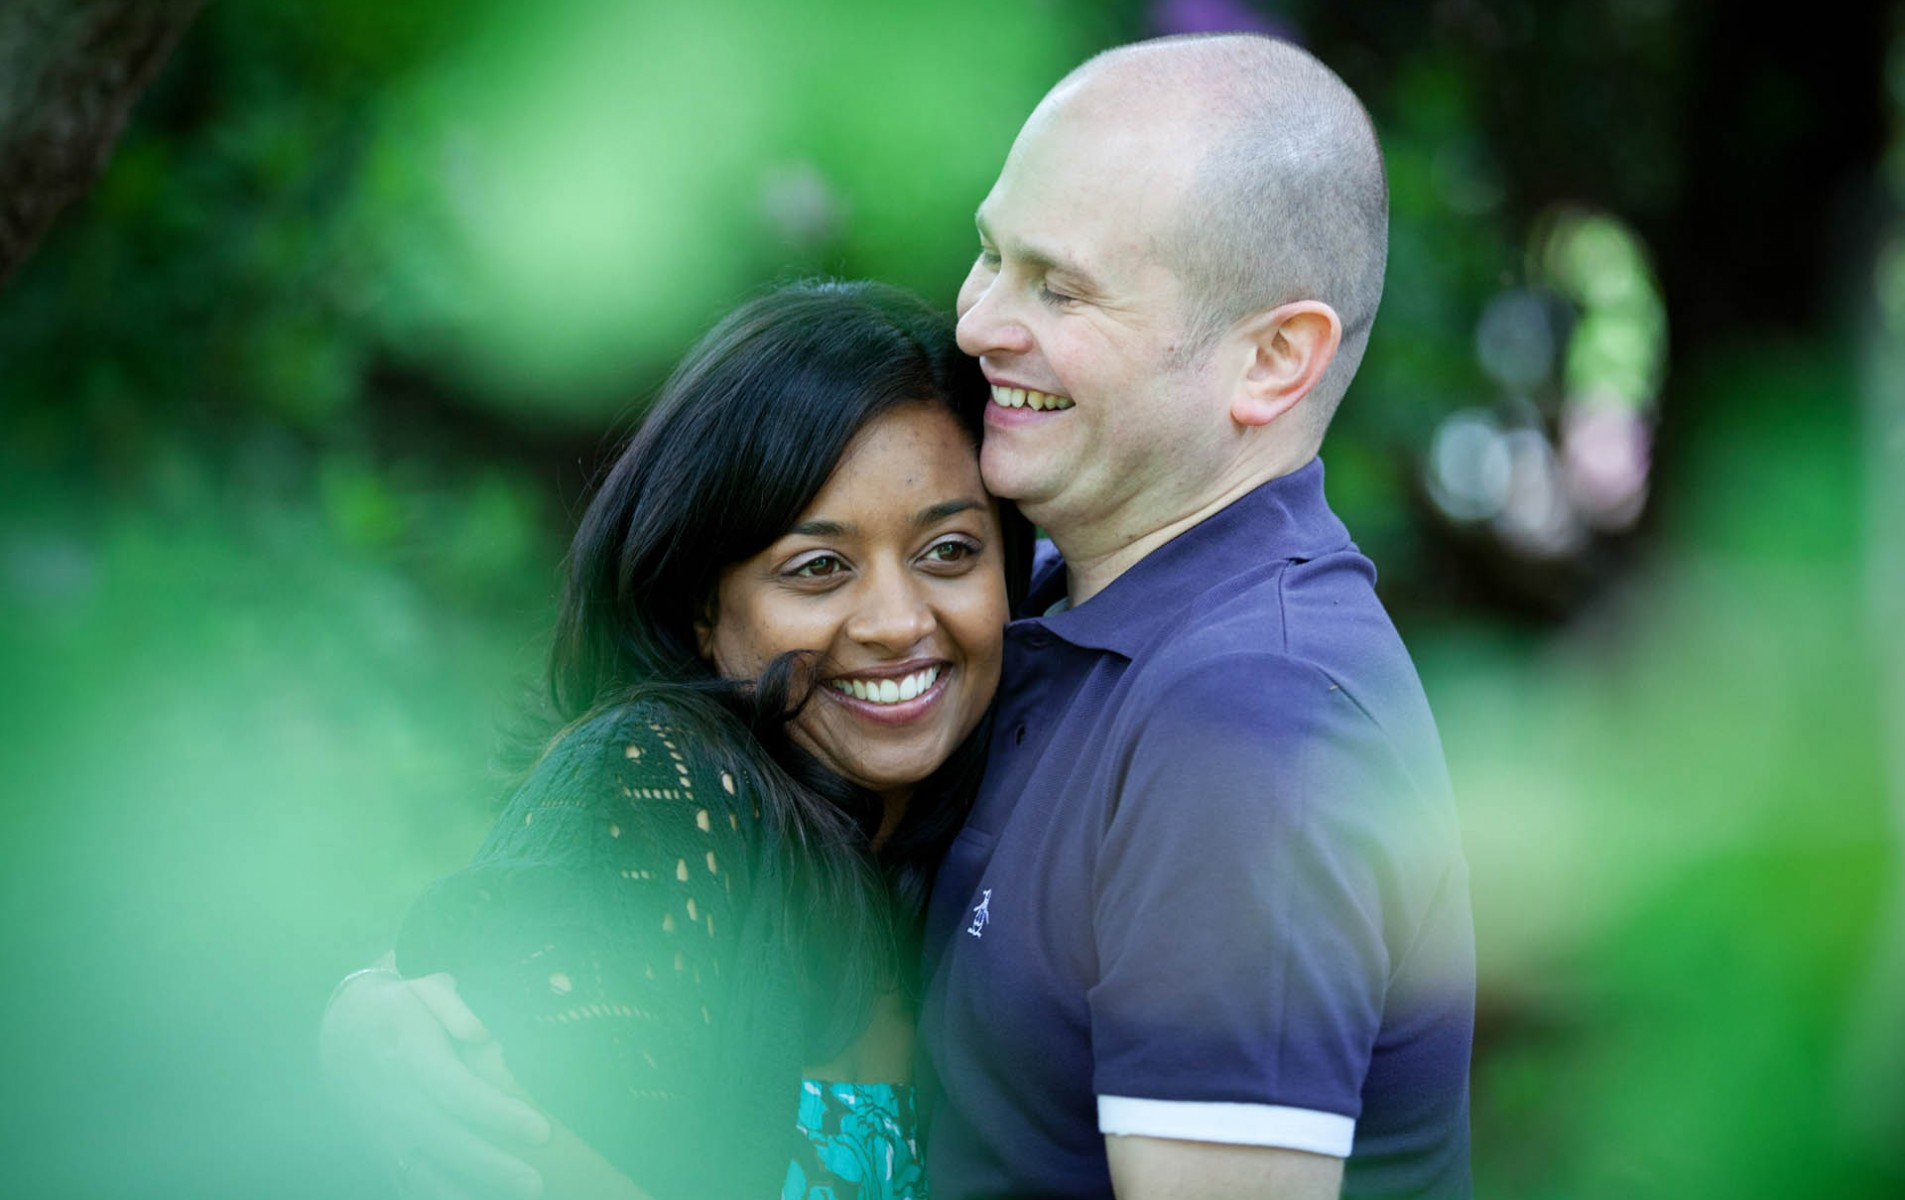 Wasing Park Wedding Photographer - Virginia Water Engagement Shoot